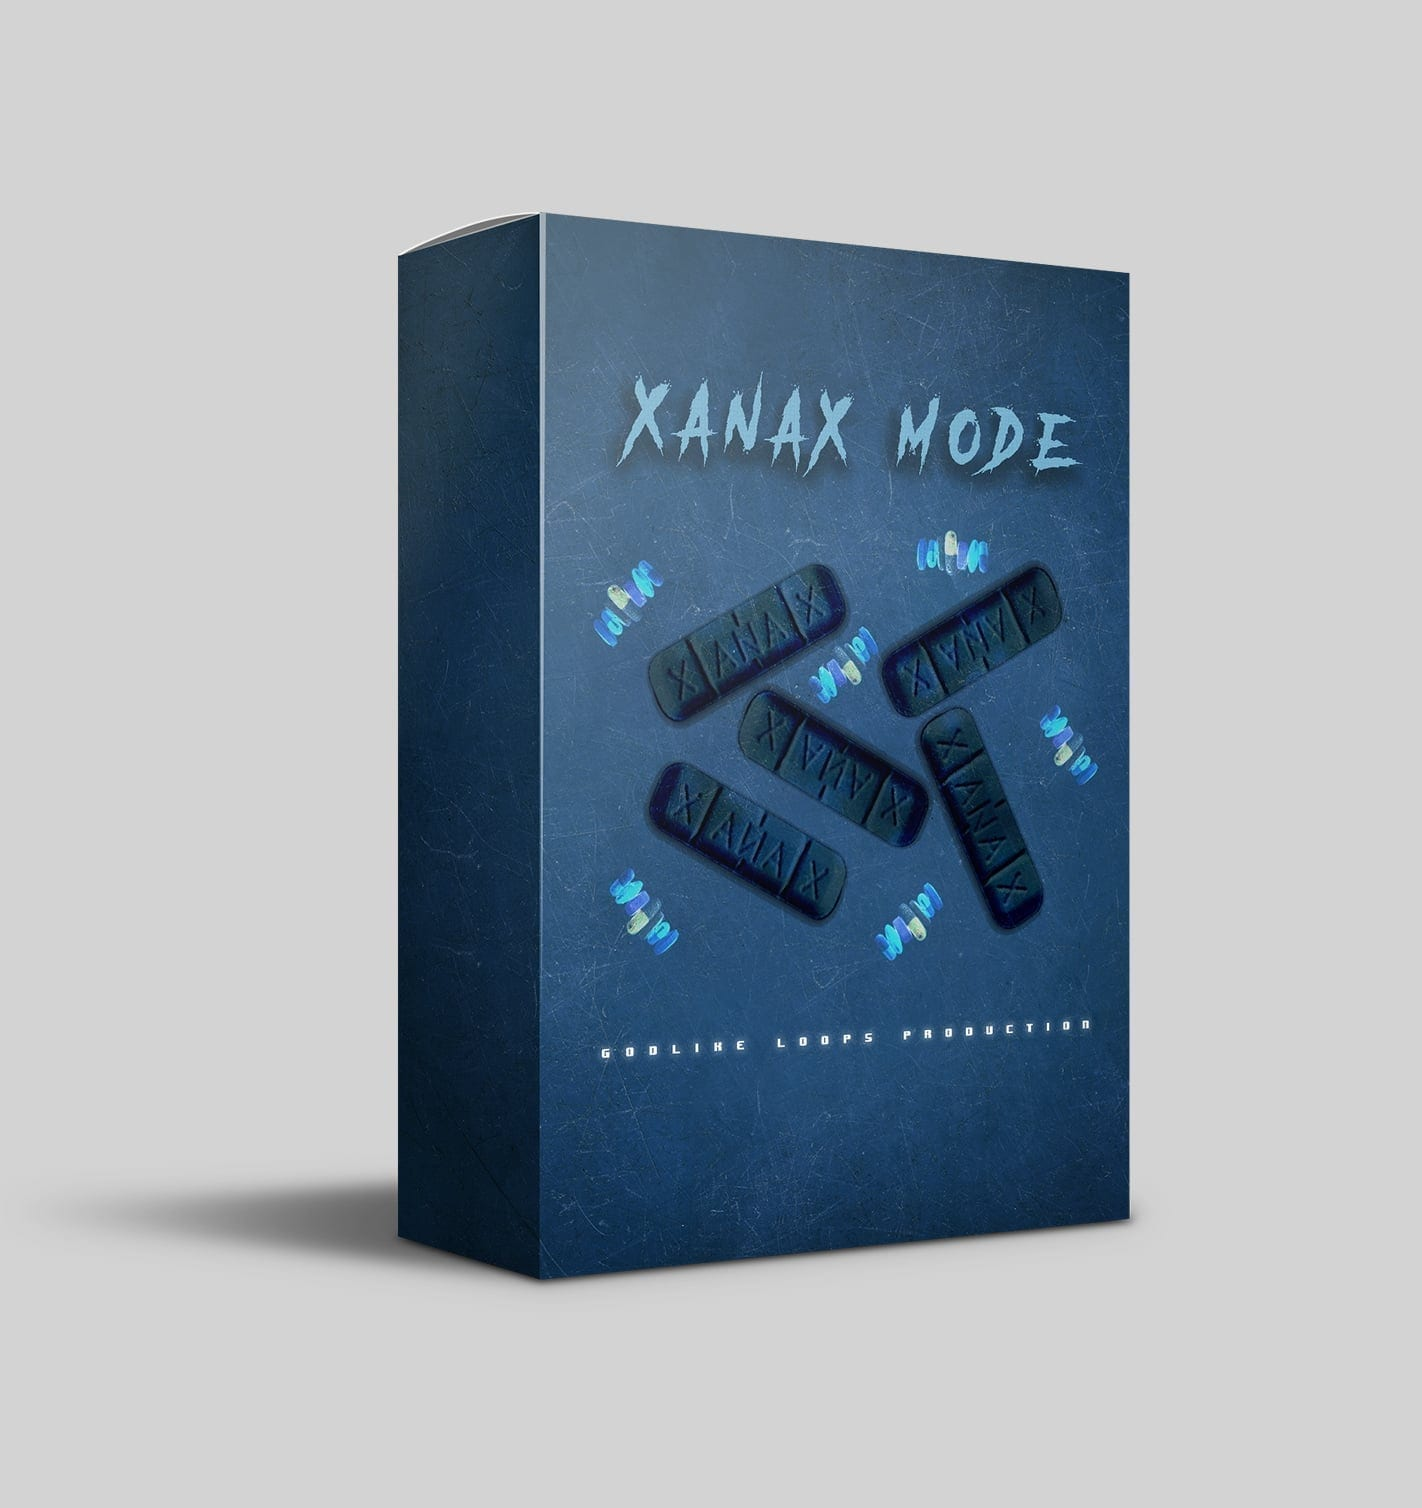 Xanax Mode Construction Kit for Producers